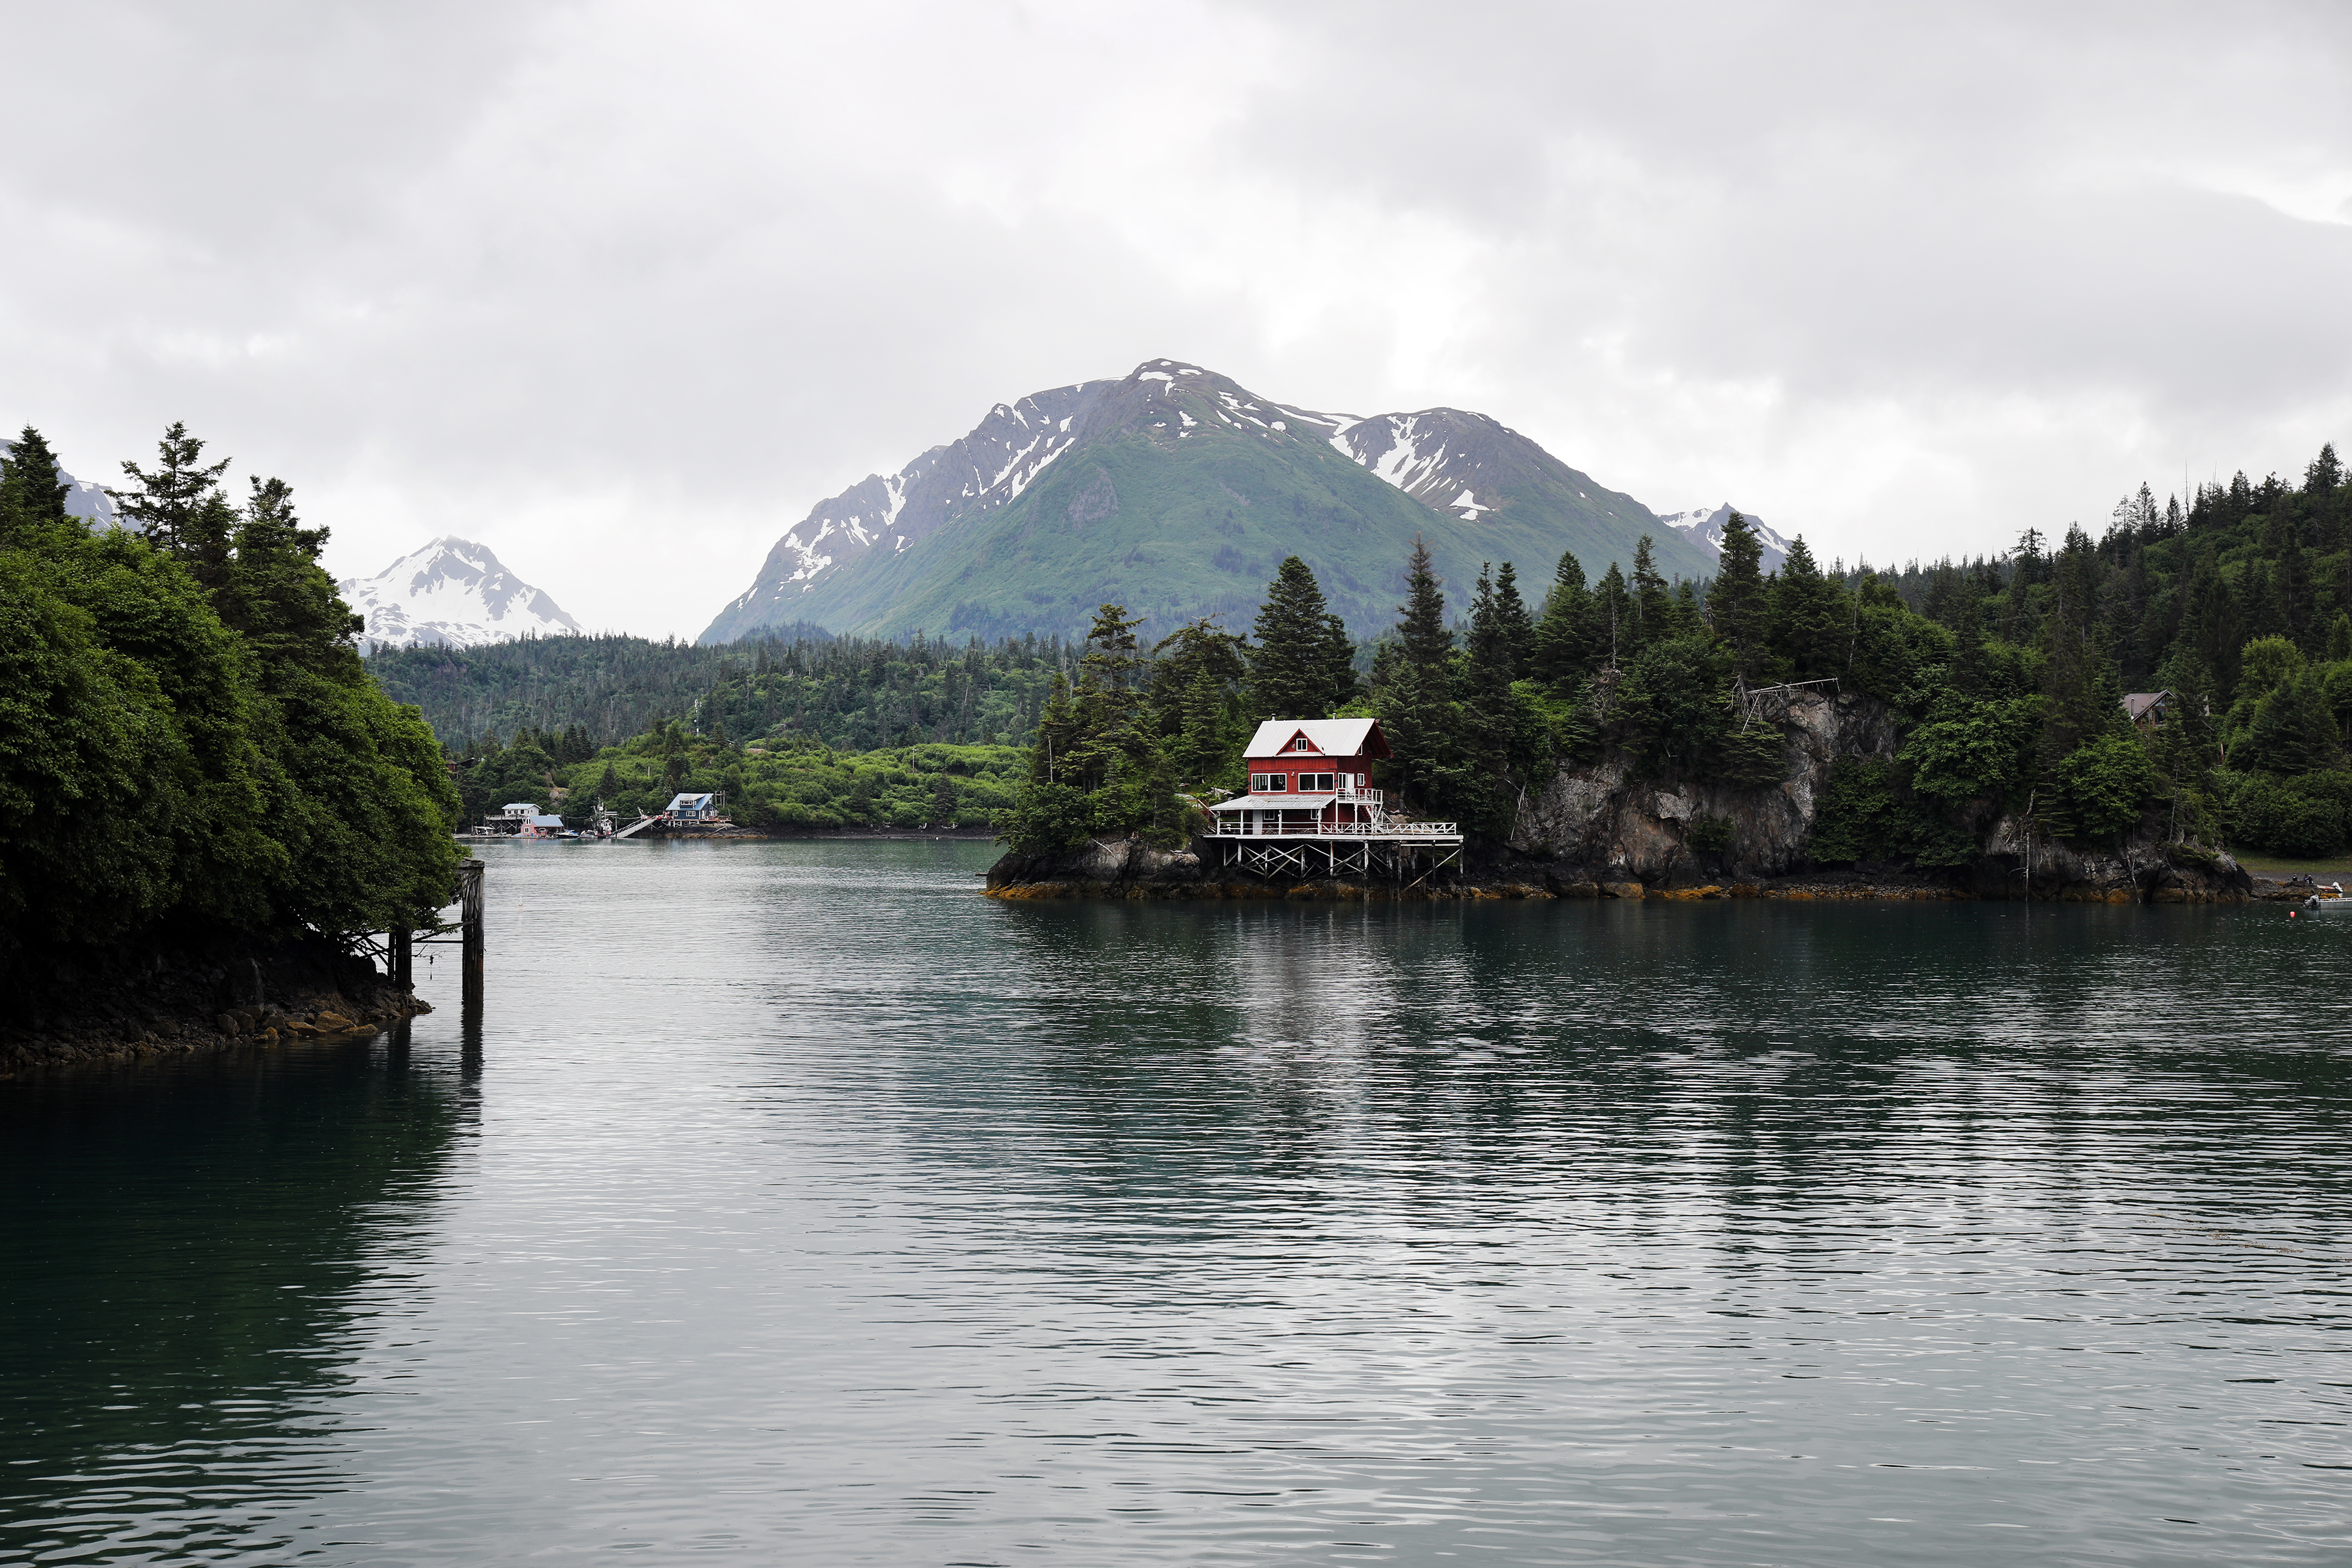 Picture of lake with snow capped mountains in background and modest water front property in Alaska.